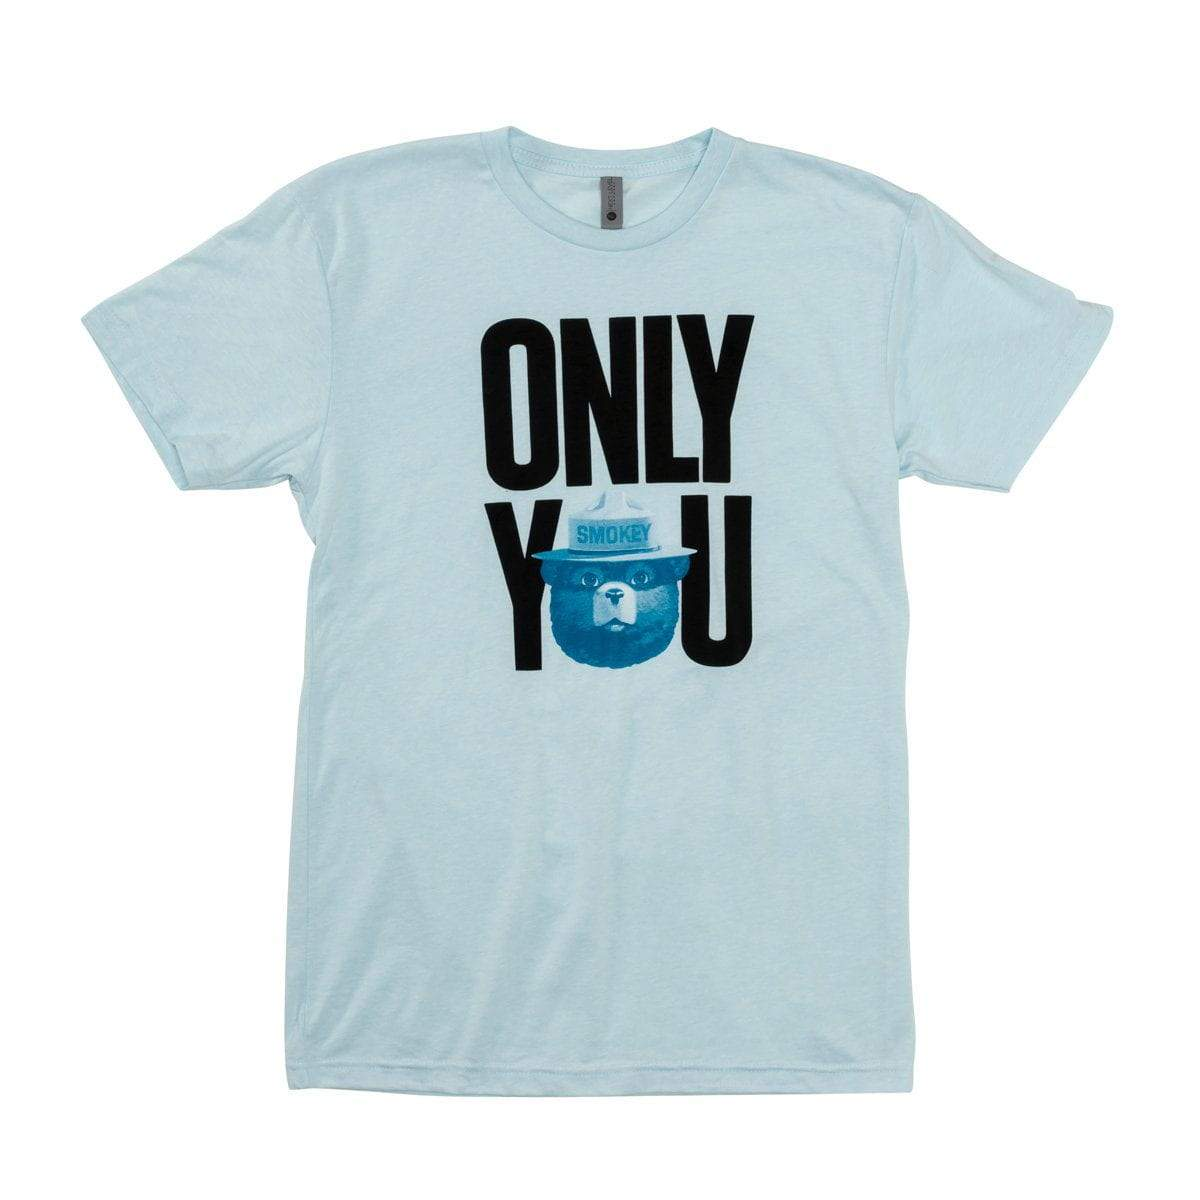 Accessories Adult Shirt- Only You